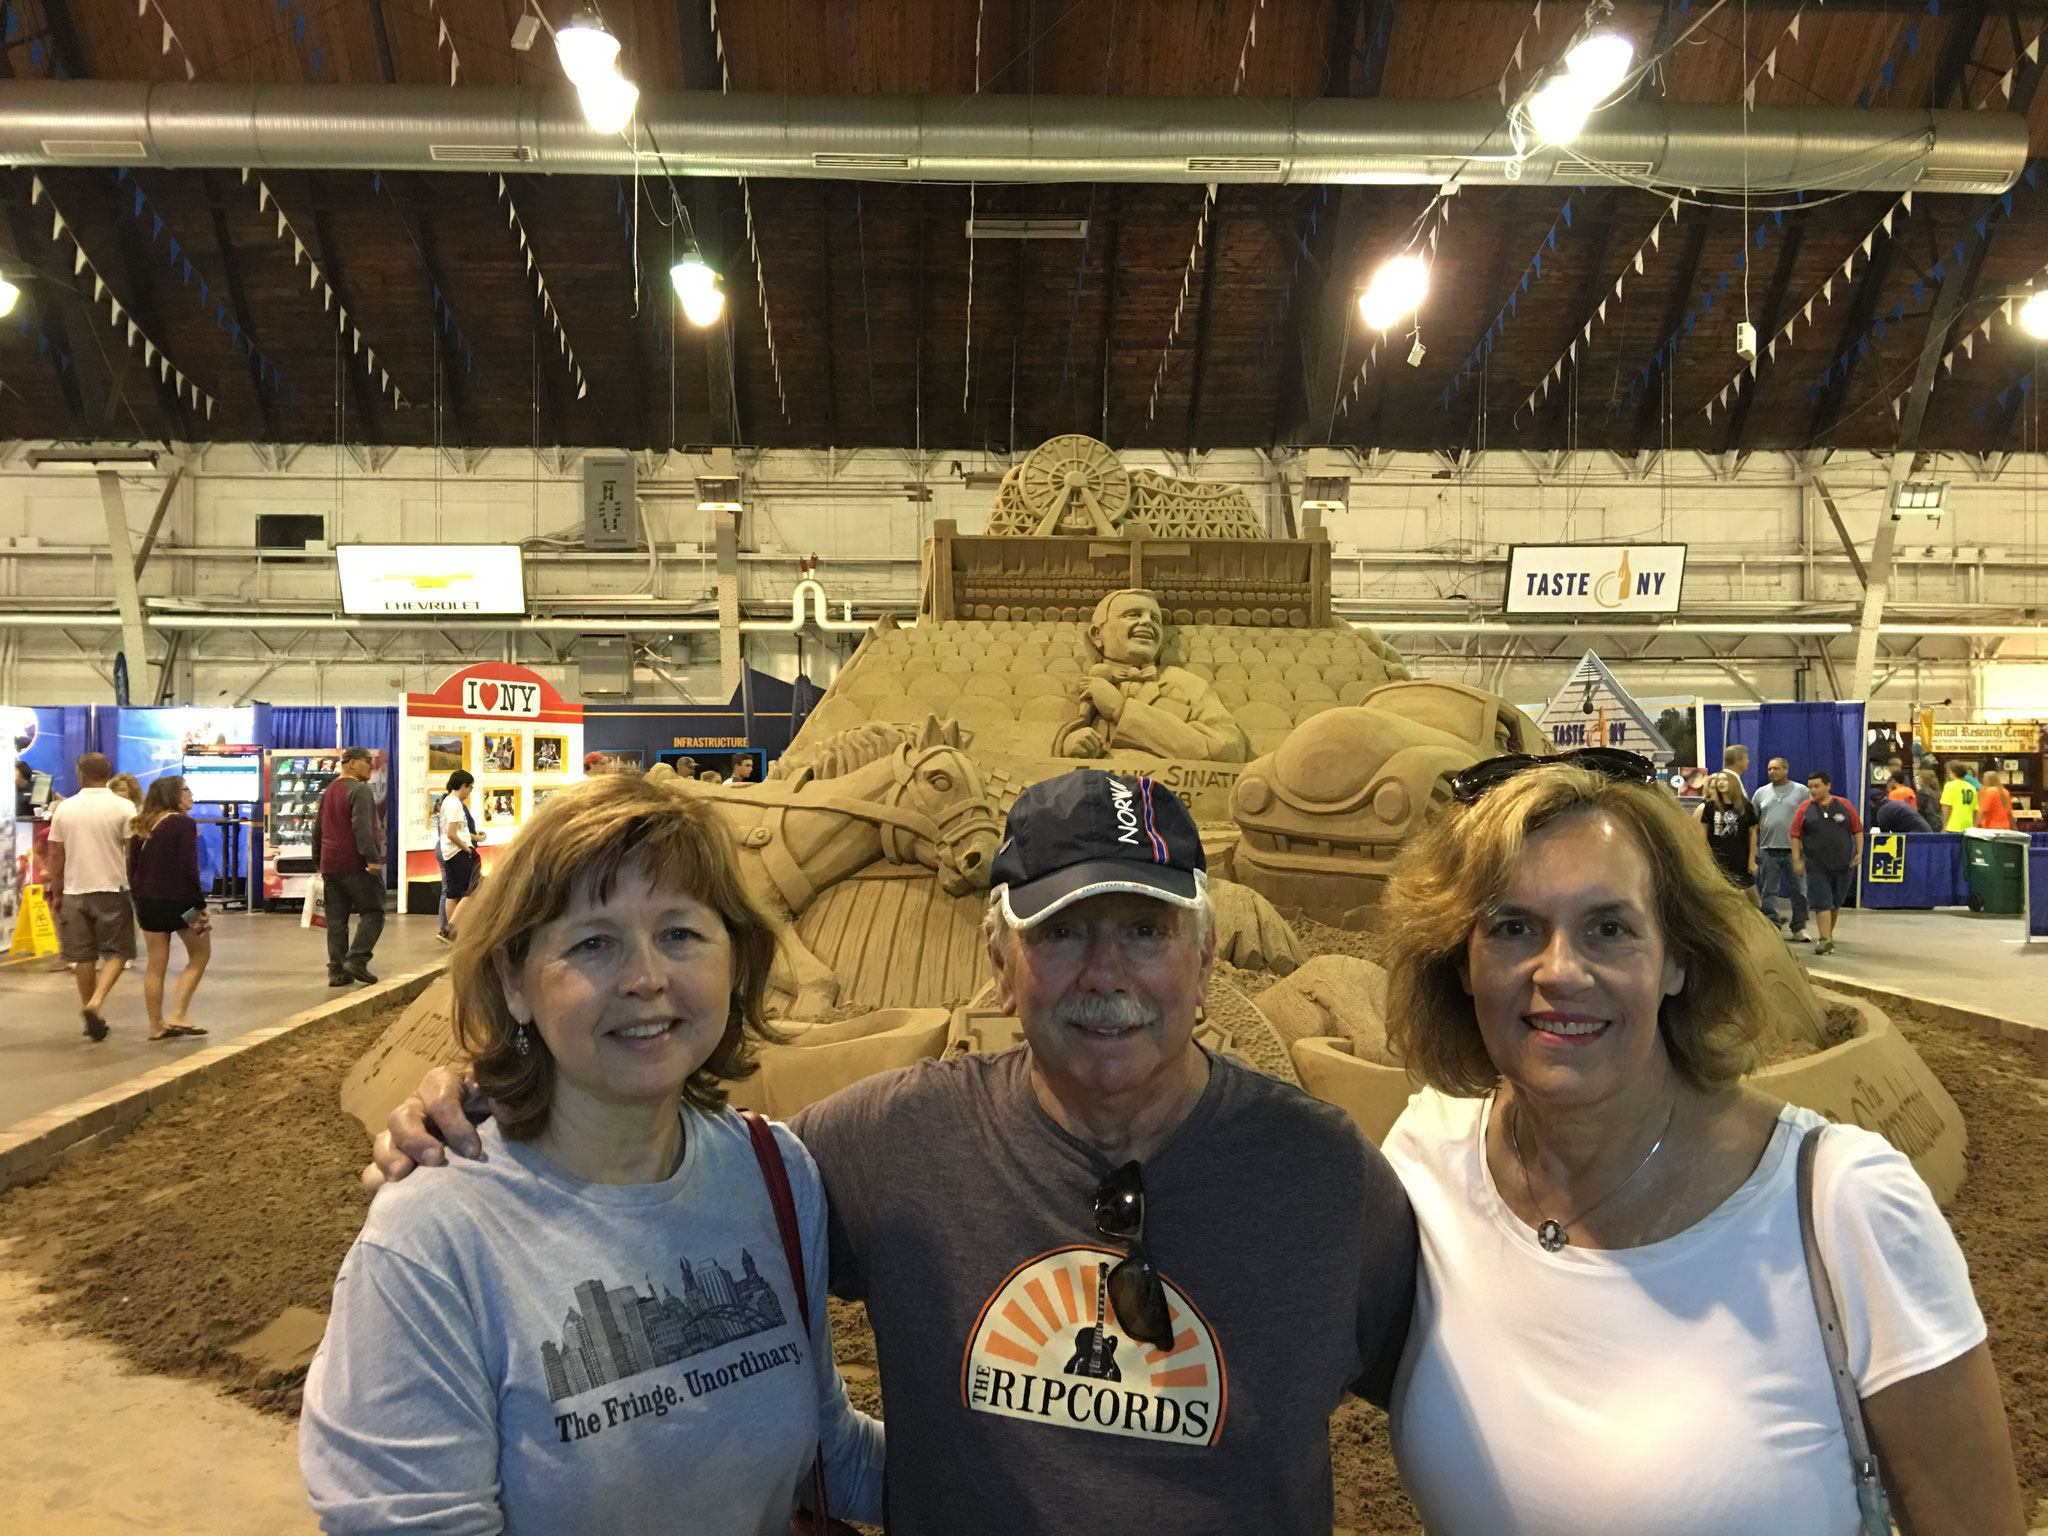 Barbara Lohse, Don Fischman, Lorraine at the NY State Fair, Sept. 3, 2016